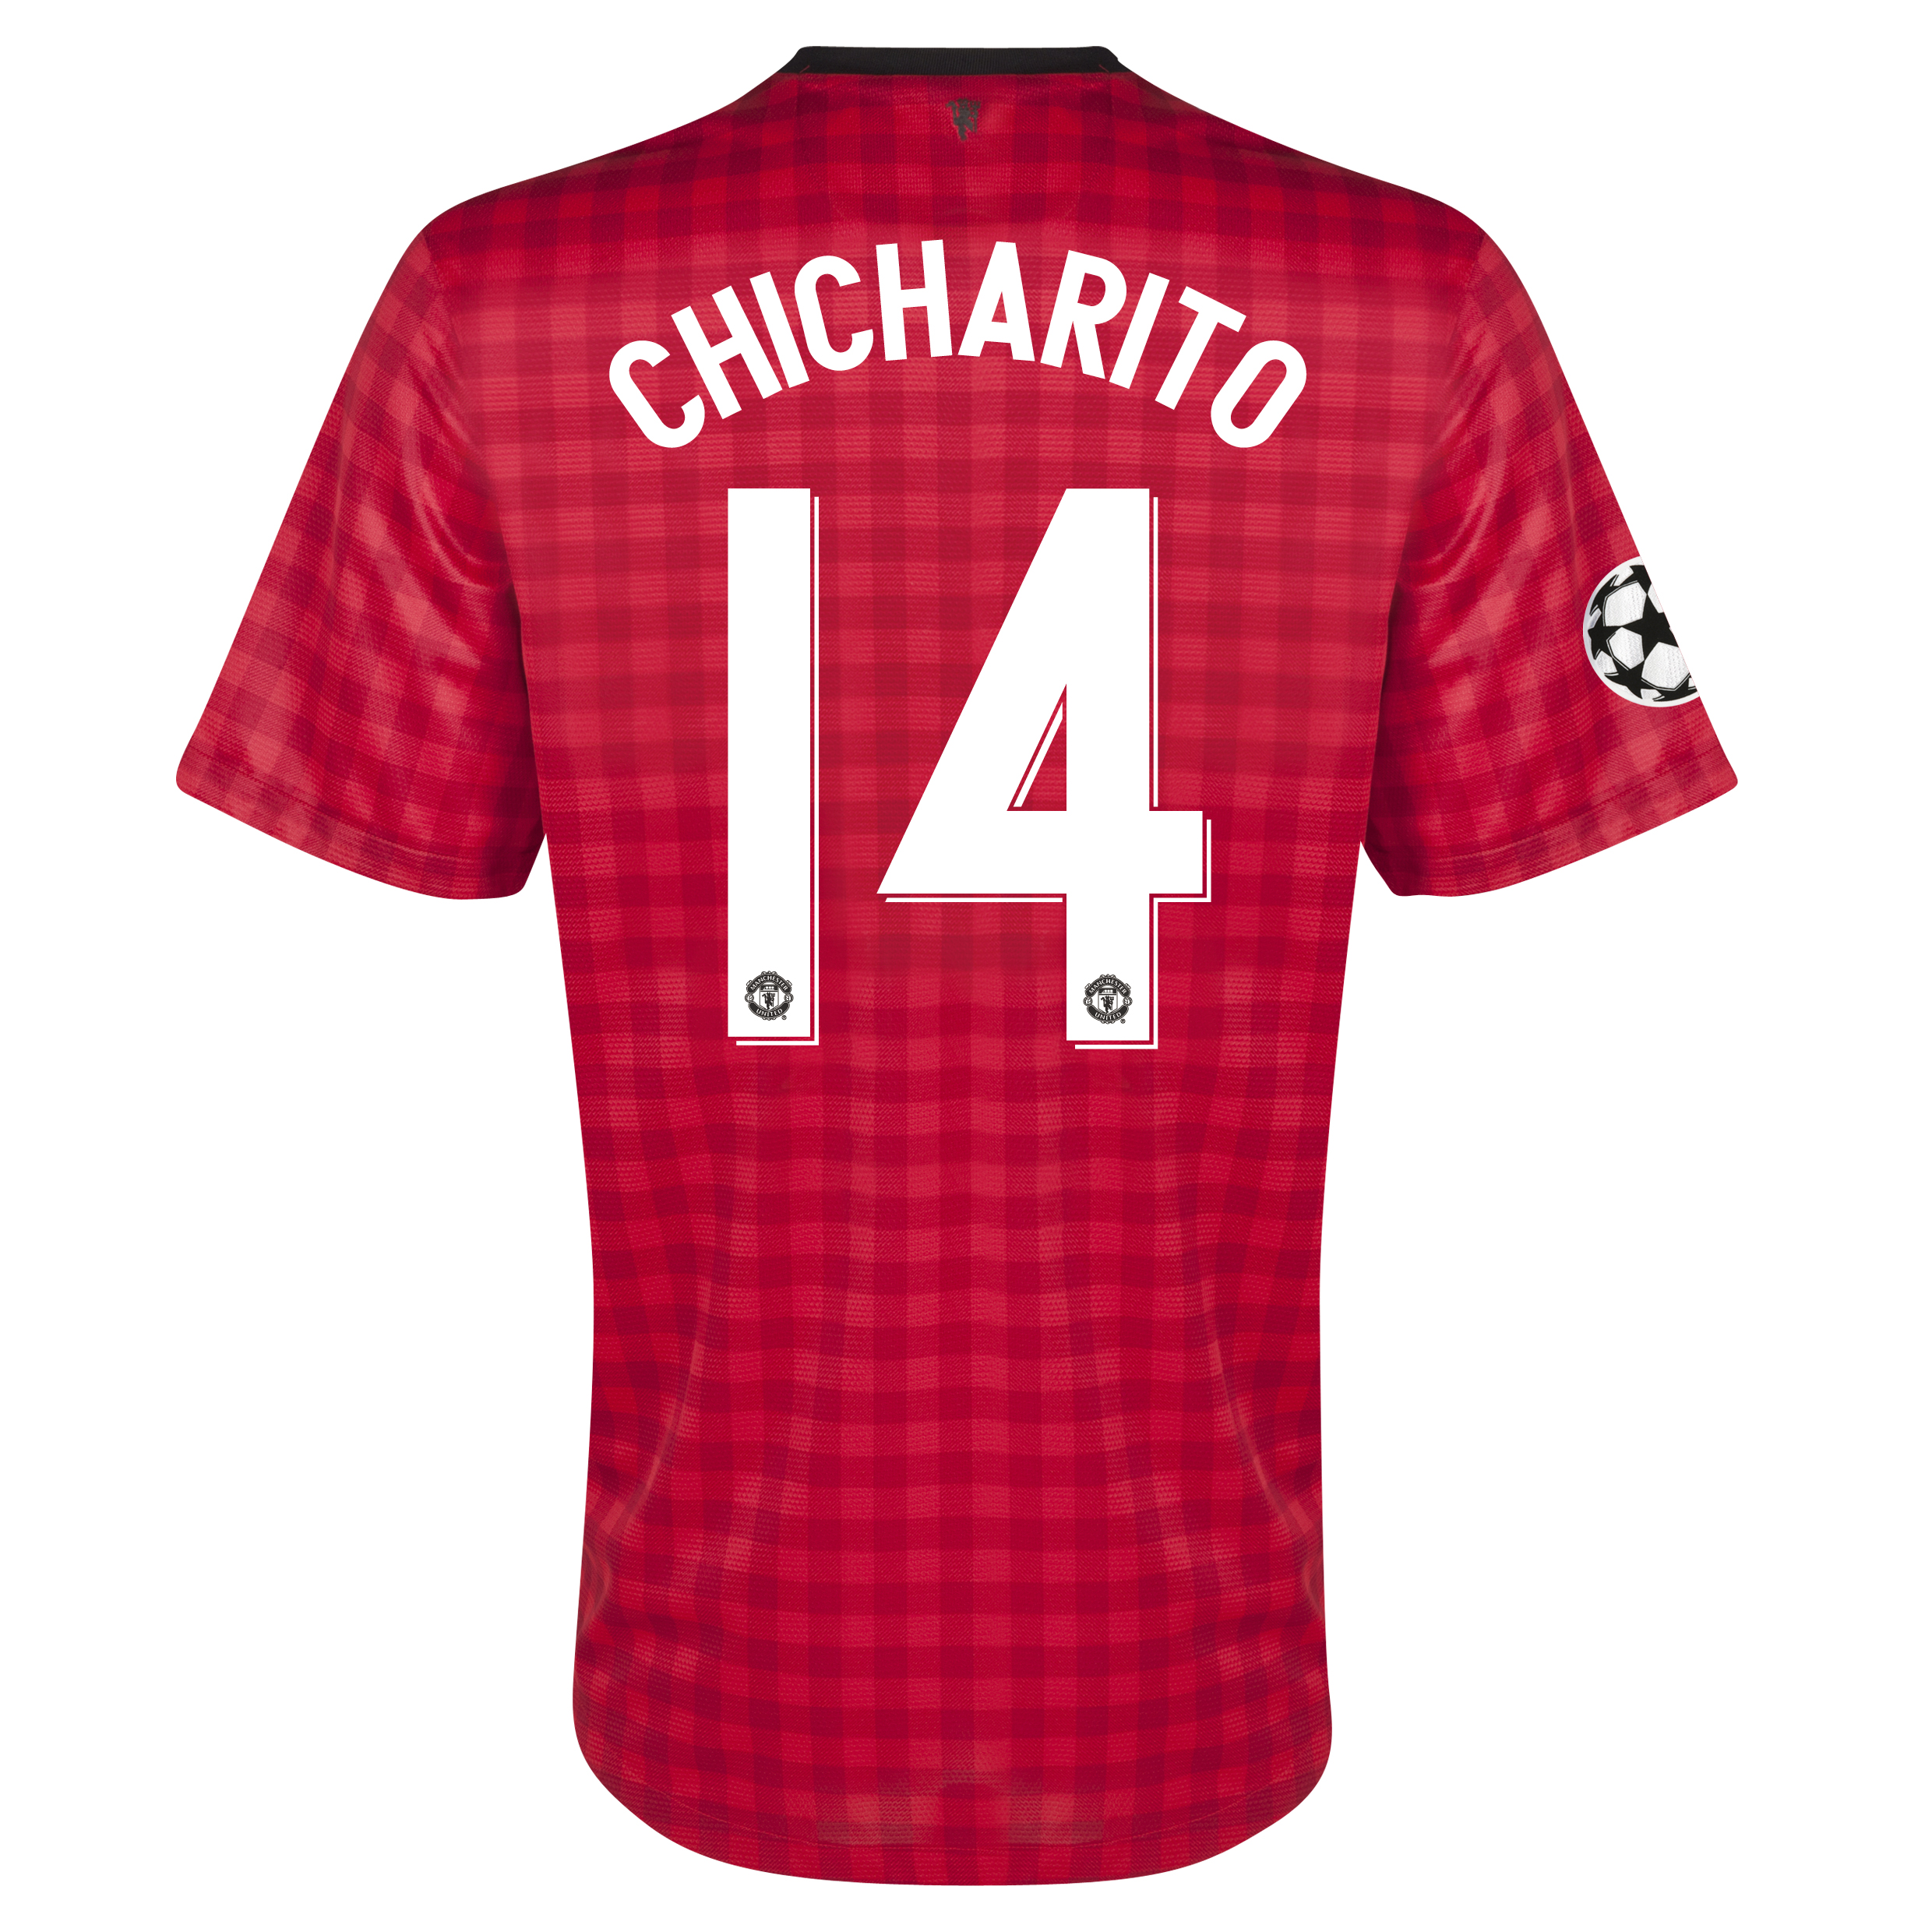 Manchester United UEFA Champions League Home Shirt 2012/13 with Chicharito 14 printing